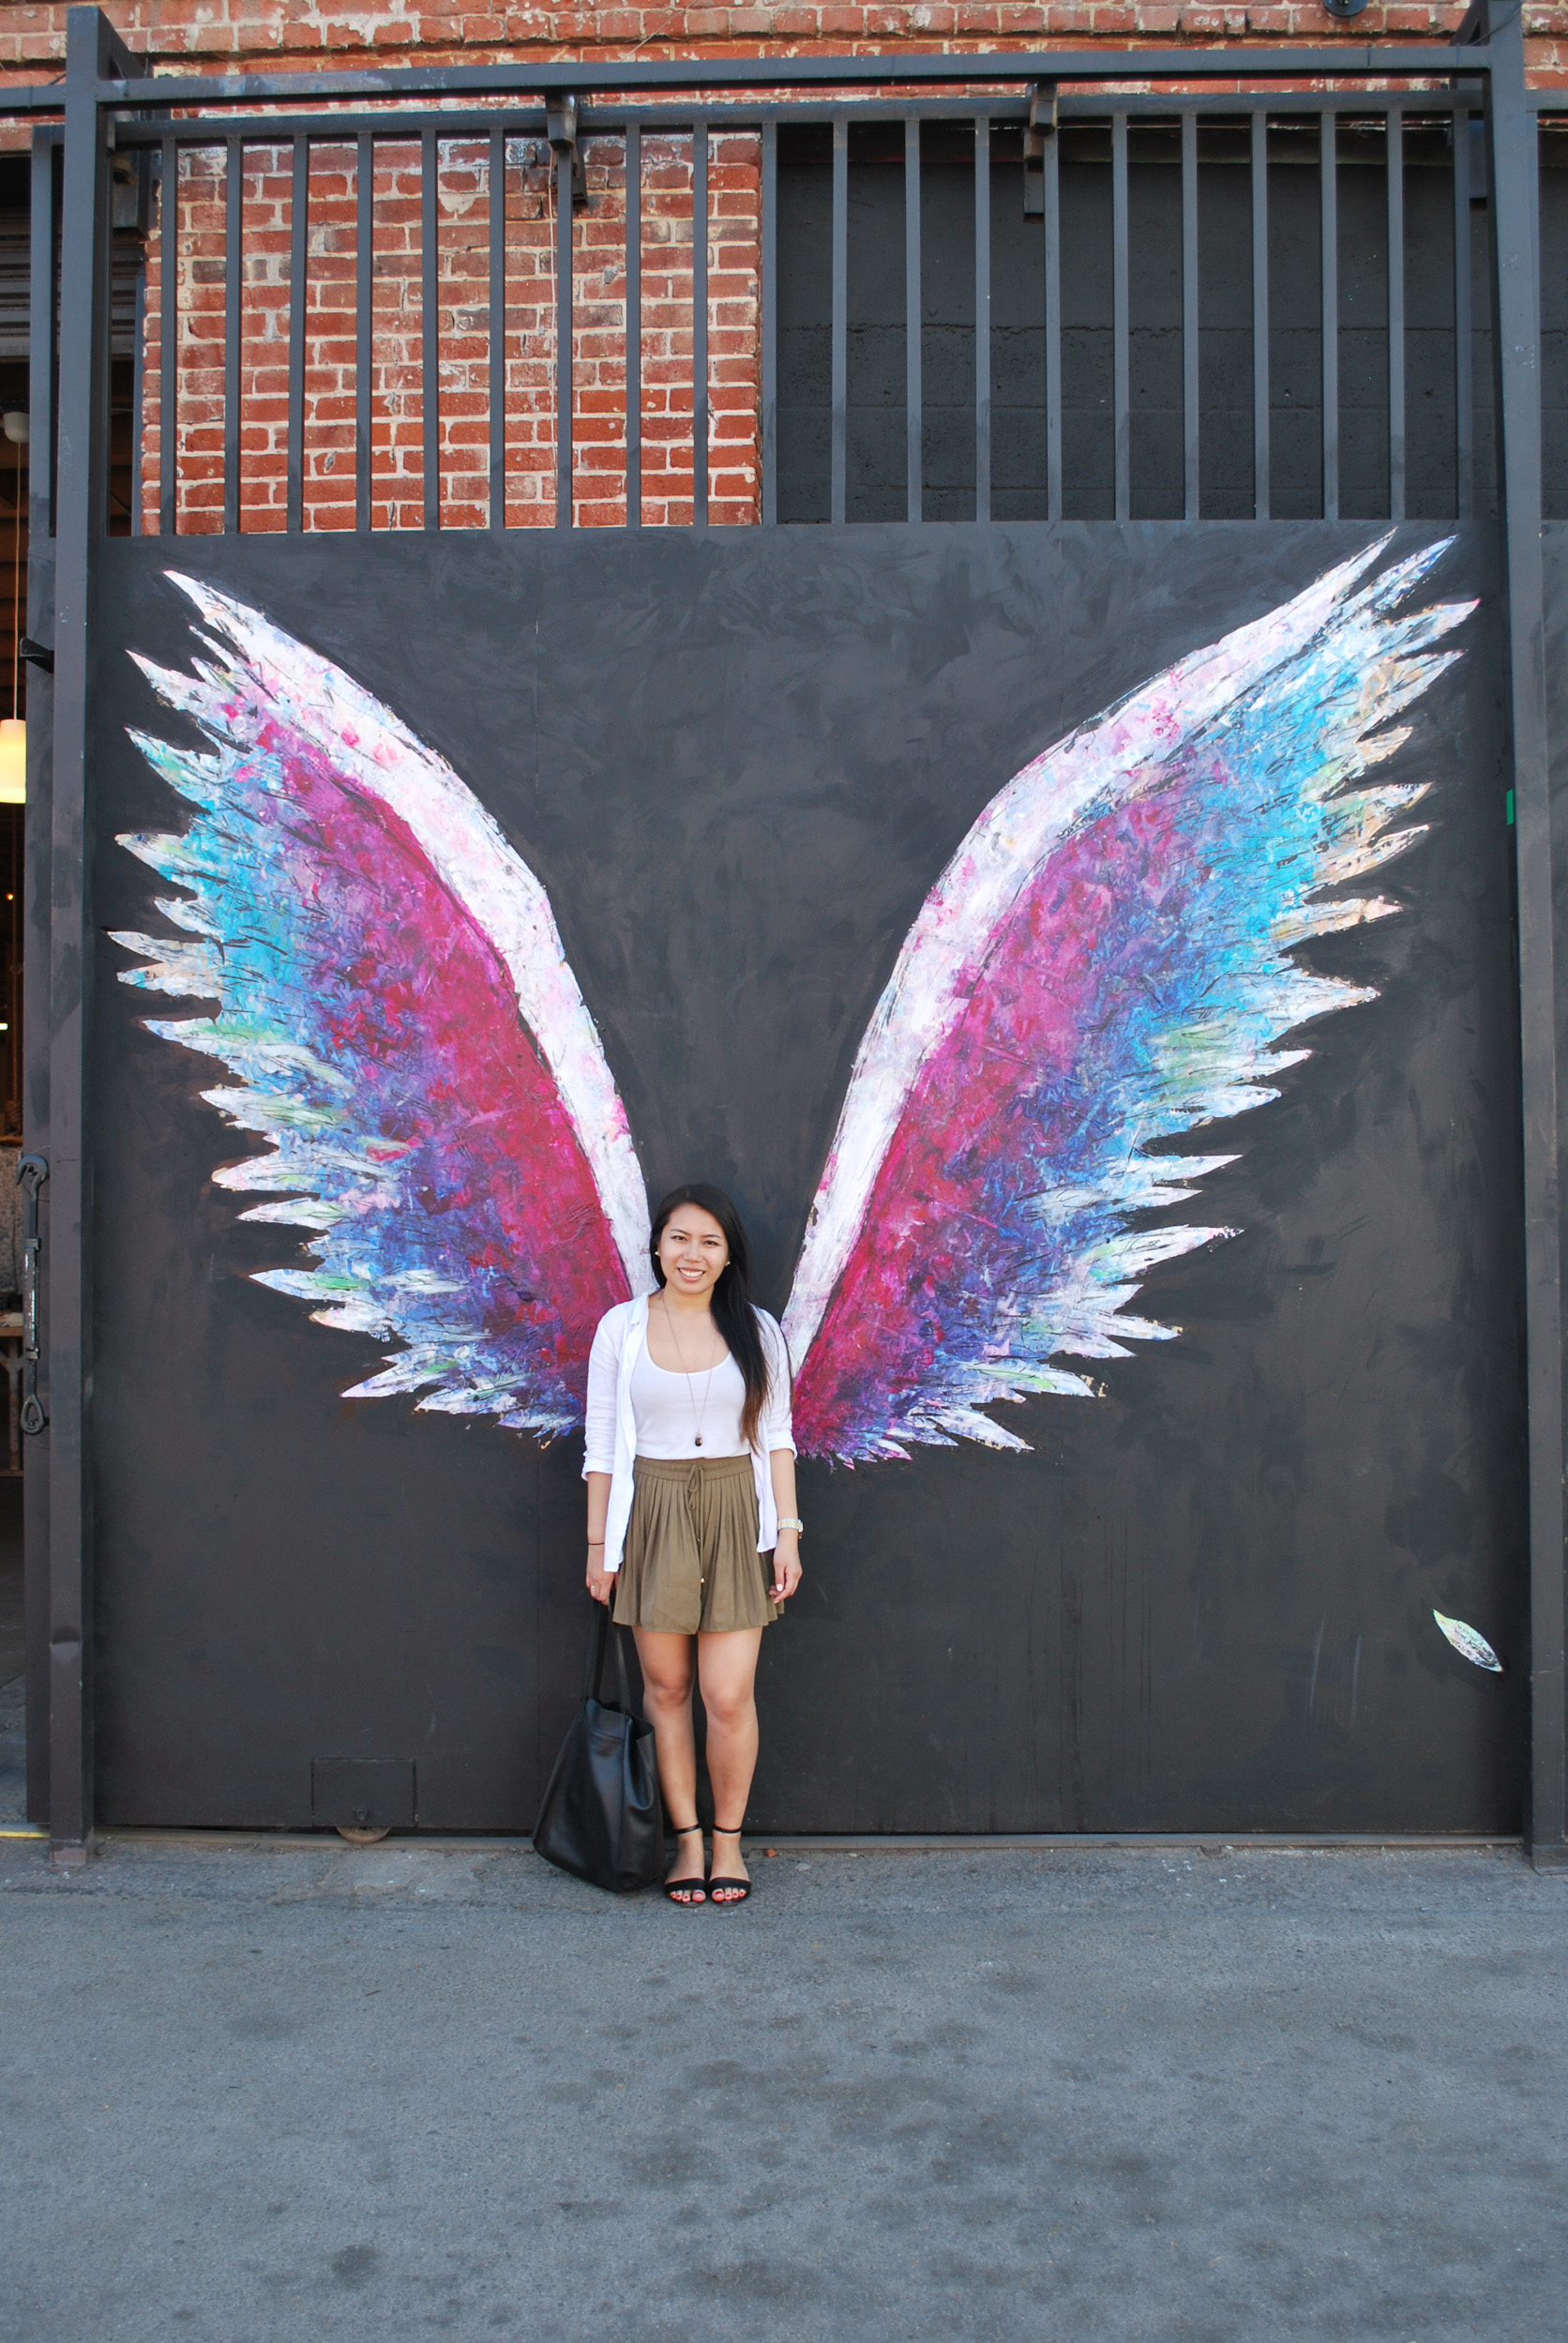 How to Spend a Day in DTLA... Without Breaking the Bank! Love art and food? This Los Angeles neighborhood is perfect for you to spend with friends or a date. Click through see my day trip!